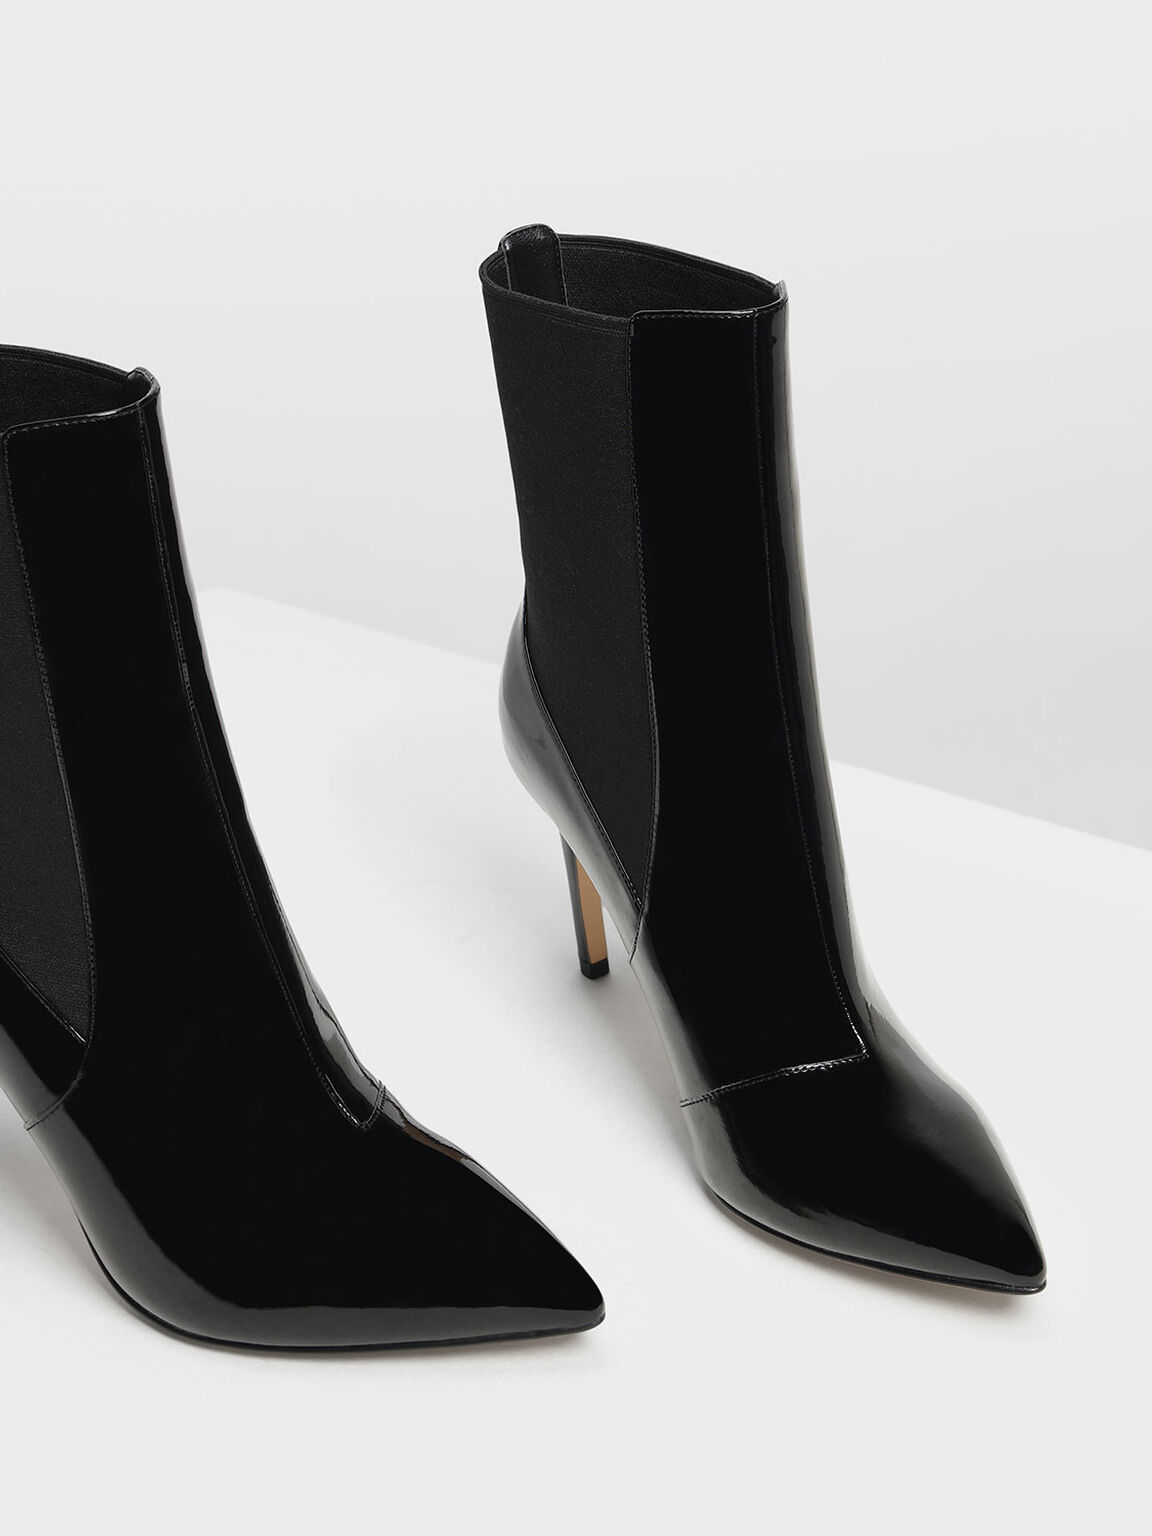 Pointed Toe Chelsea Boots, Black, hi-res